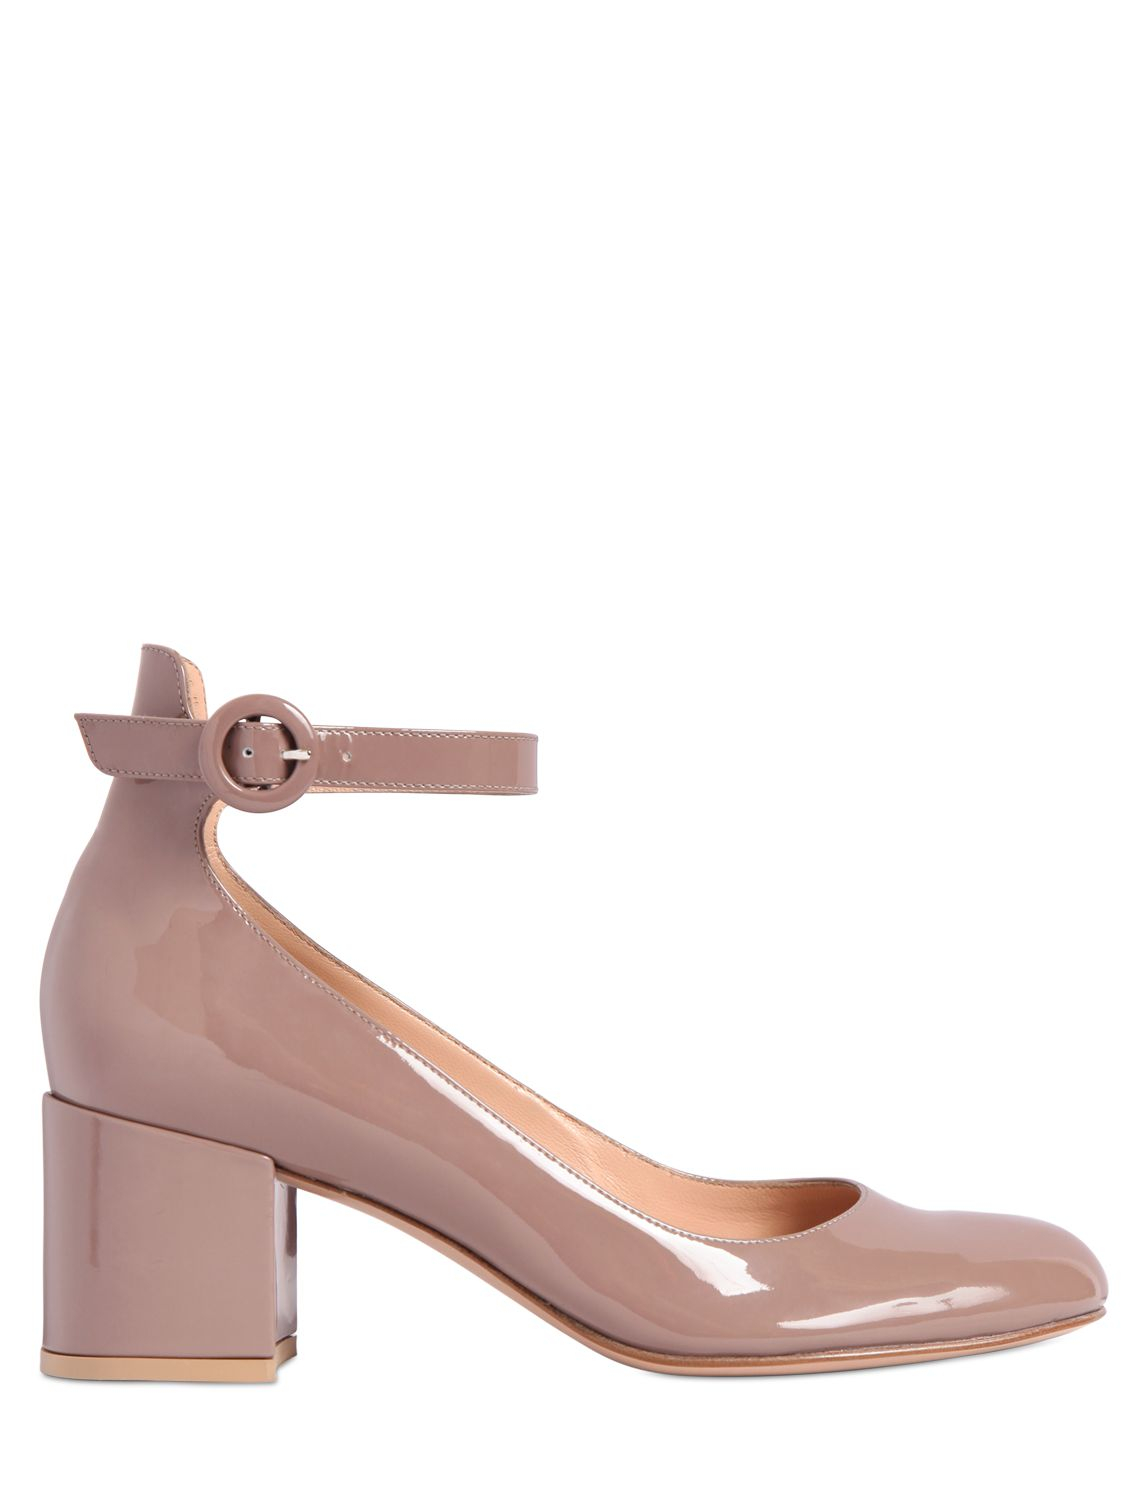 Gianvito Rossi Patent Leather Mary Jane d'Orsay Pumps KM6q3MFT